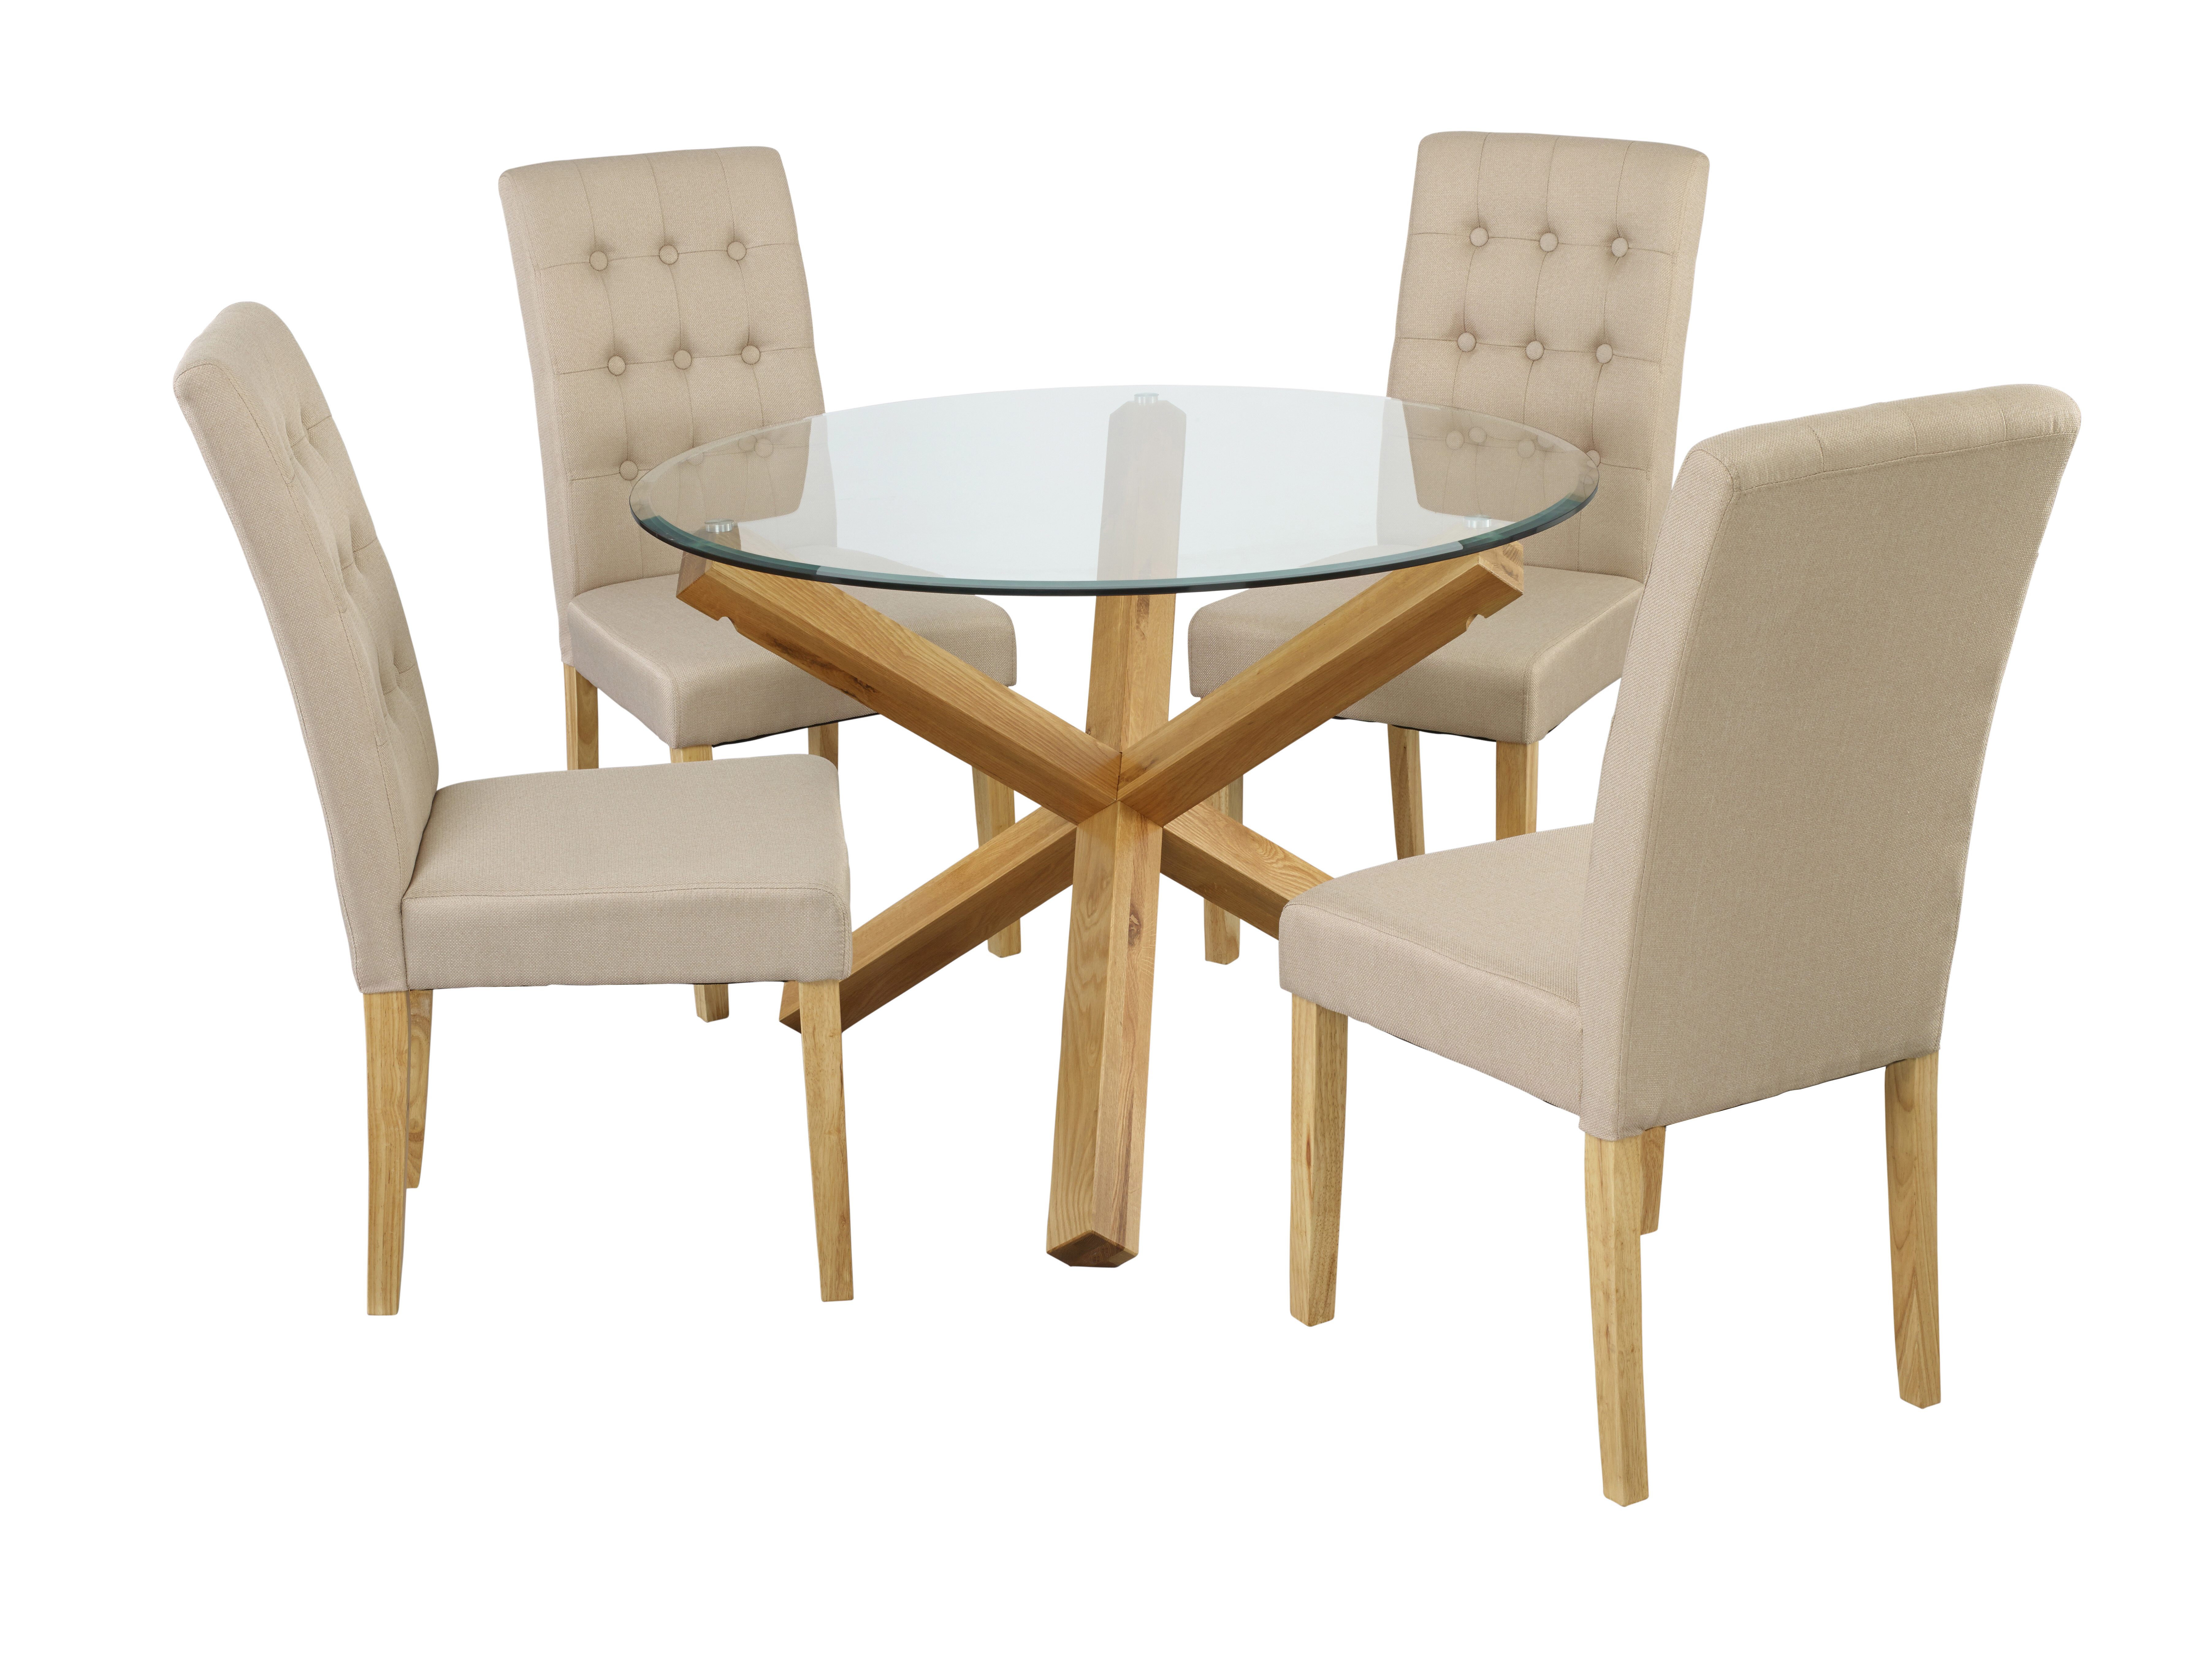 Riley Ave. Oporto Dining Table with 4 Chairs & Reviews | Wayfair.co.uk